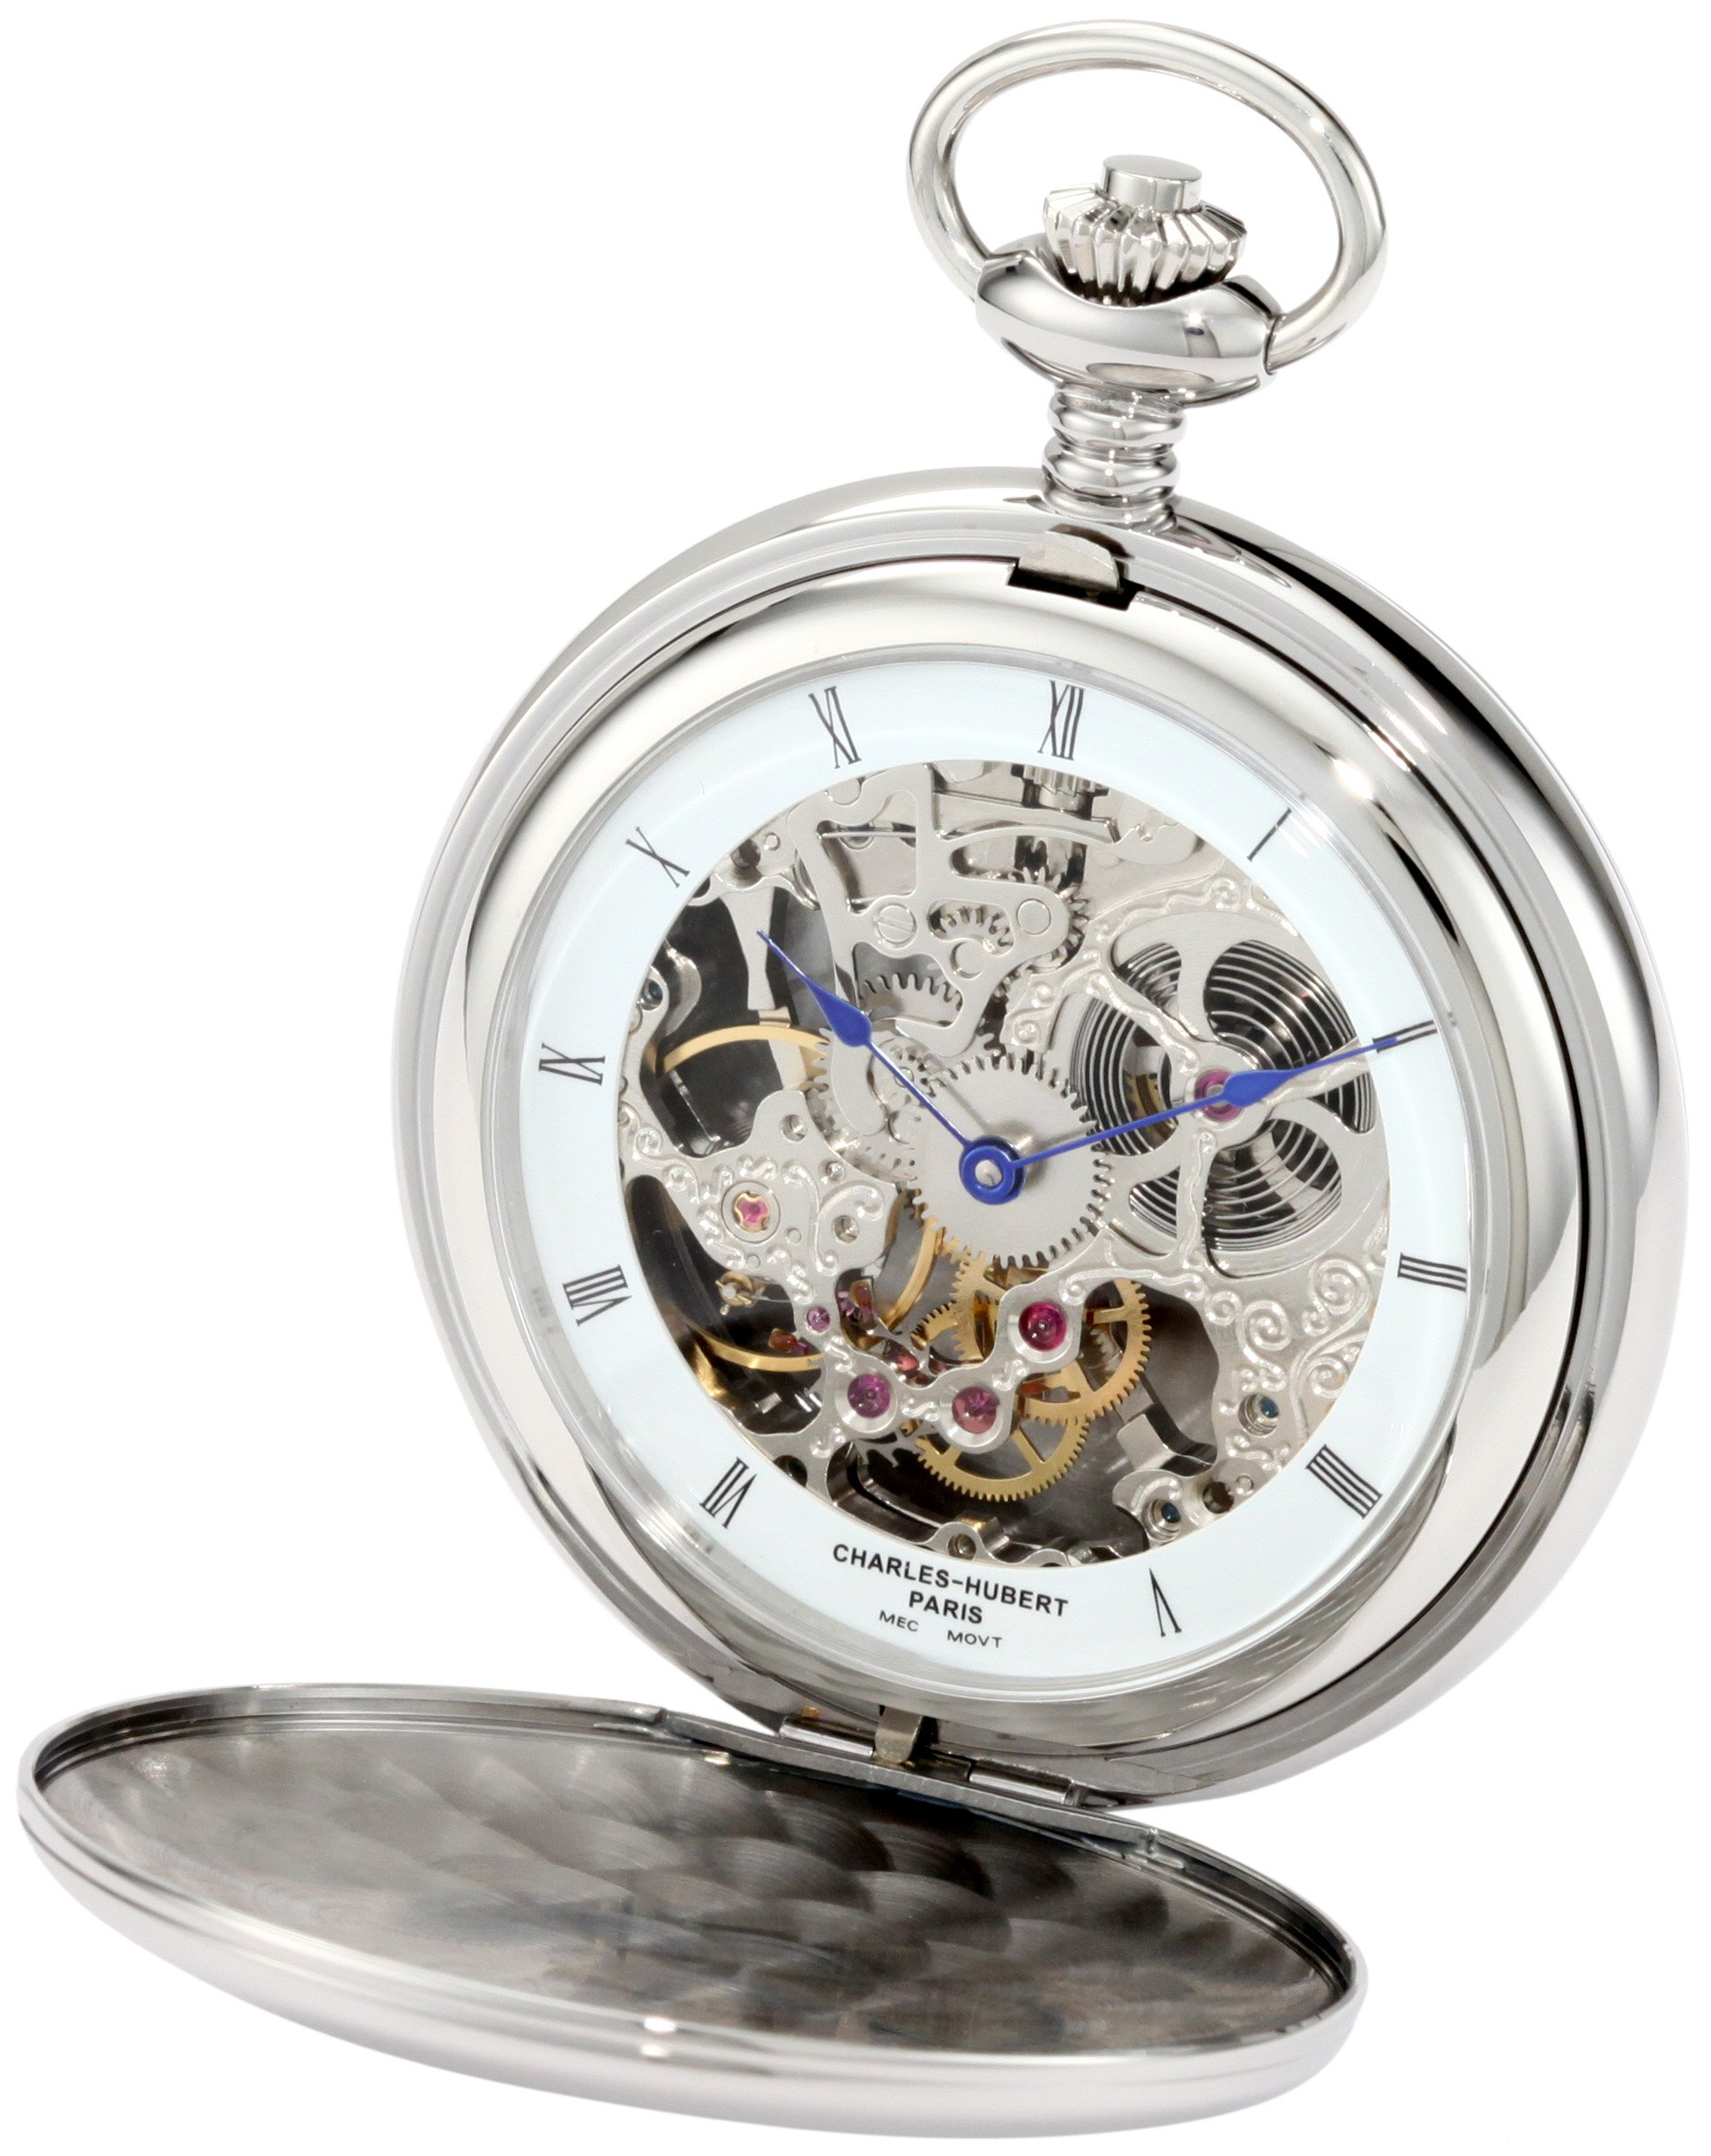 Charles-Hubert, Paris 3904-W Premium Collection Stainless Steel Polished Finish Double Hunter Case Mechanical Pocket Watch by Charles-Hubert, Paris